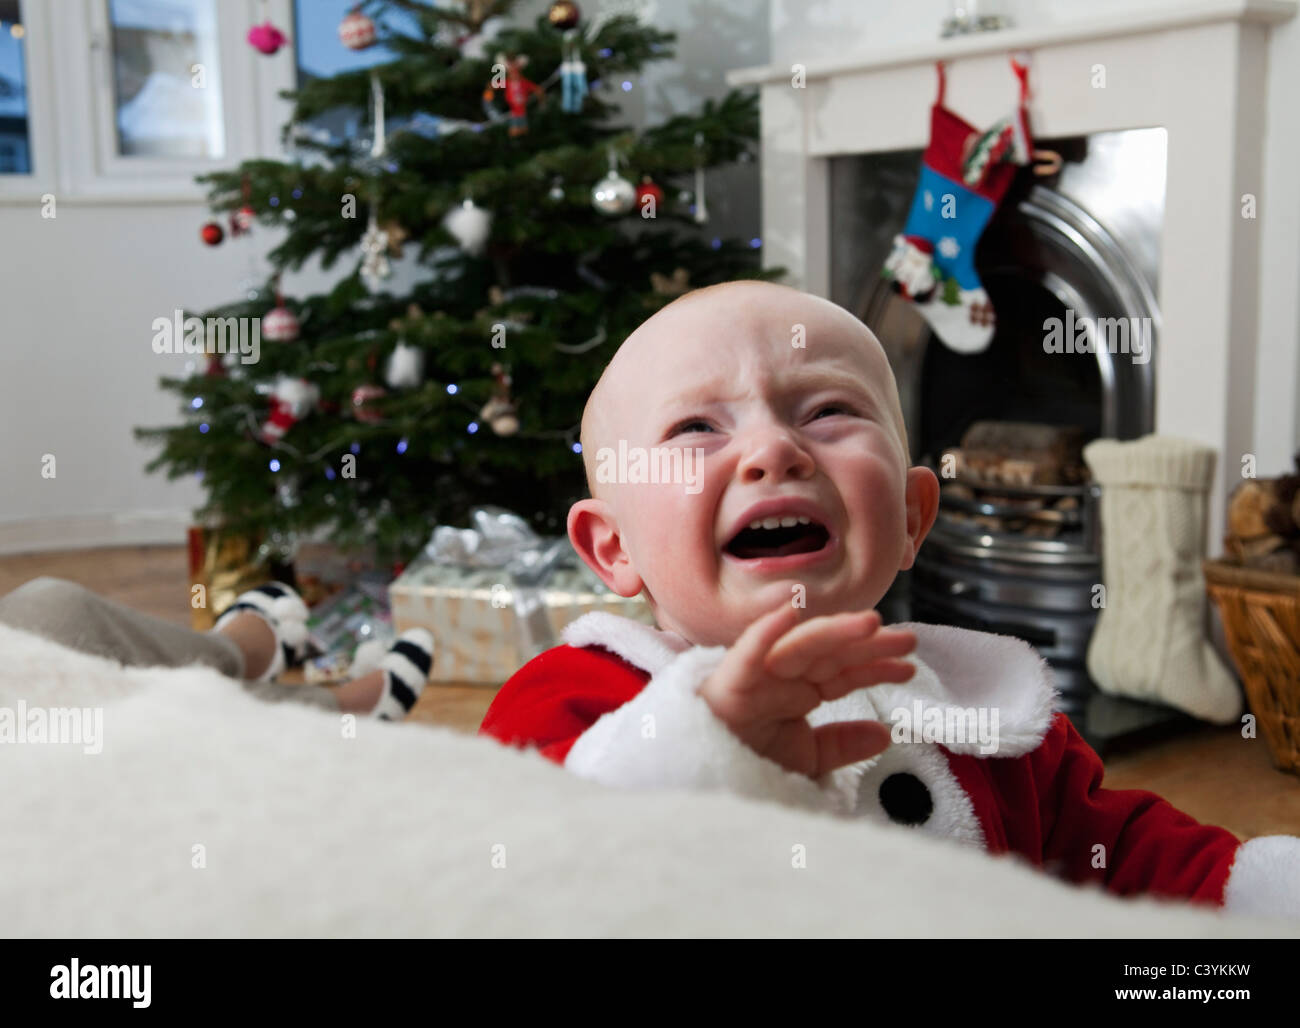 A baby crying at Christmas Stock Photo